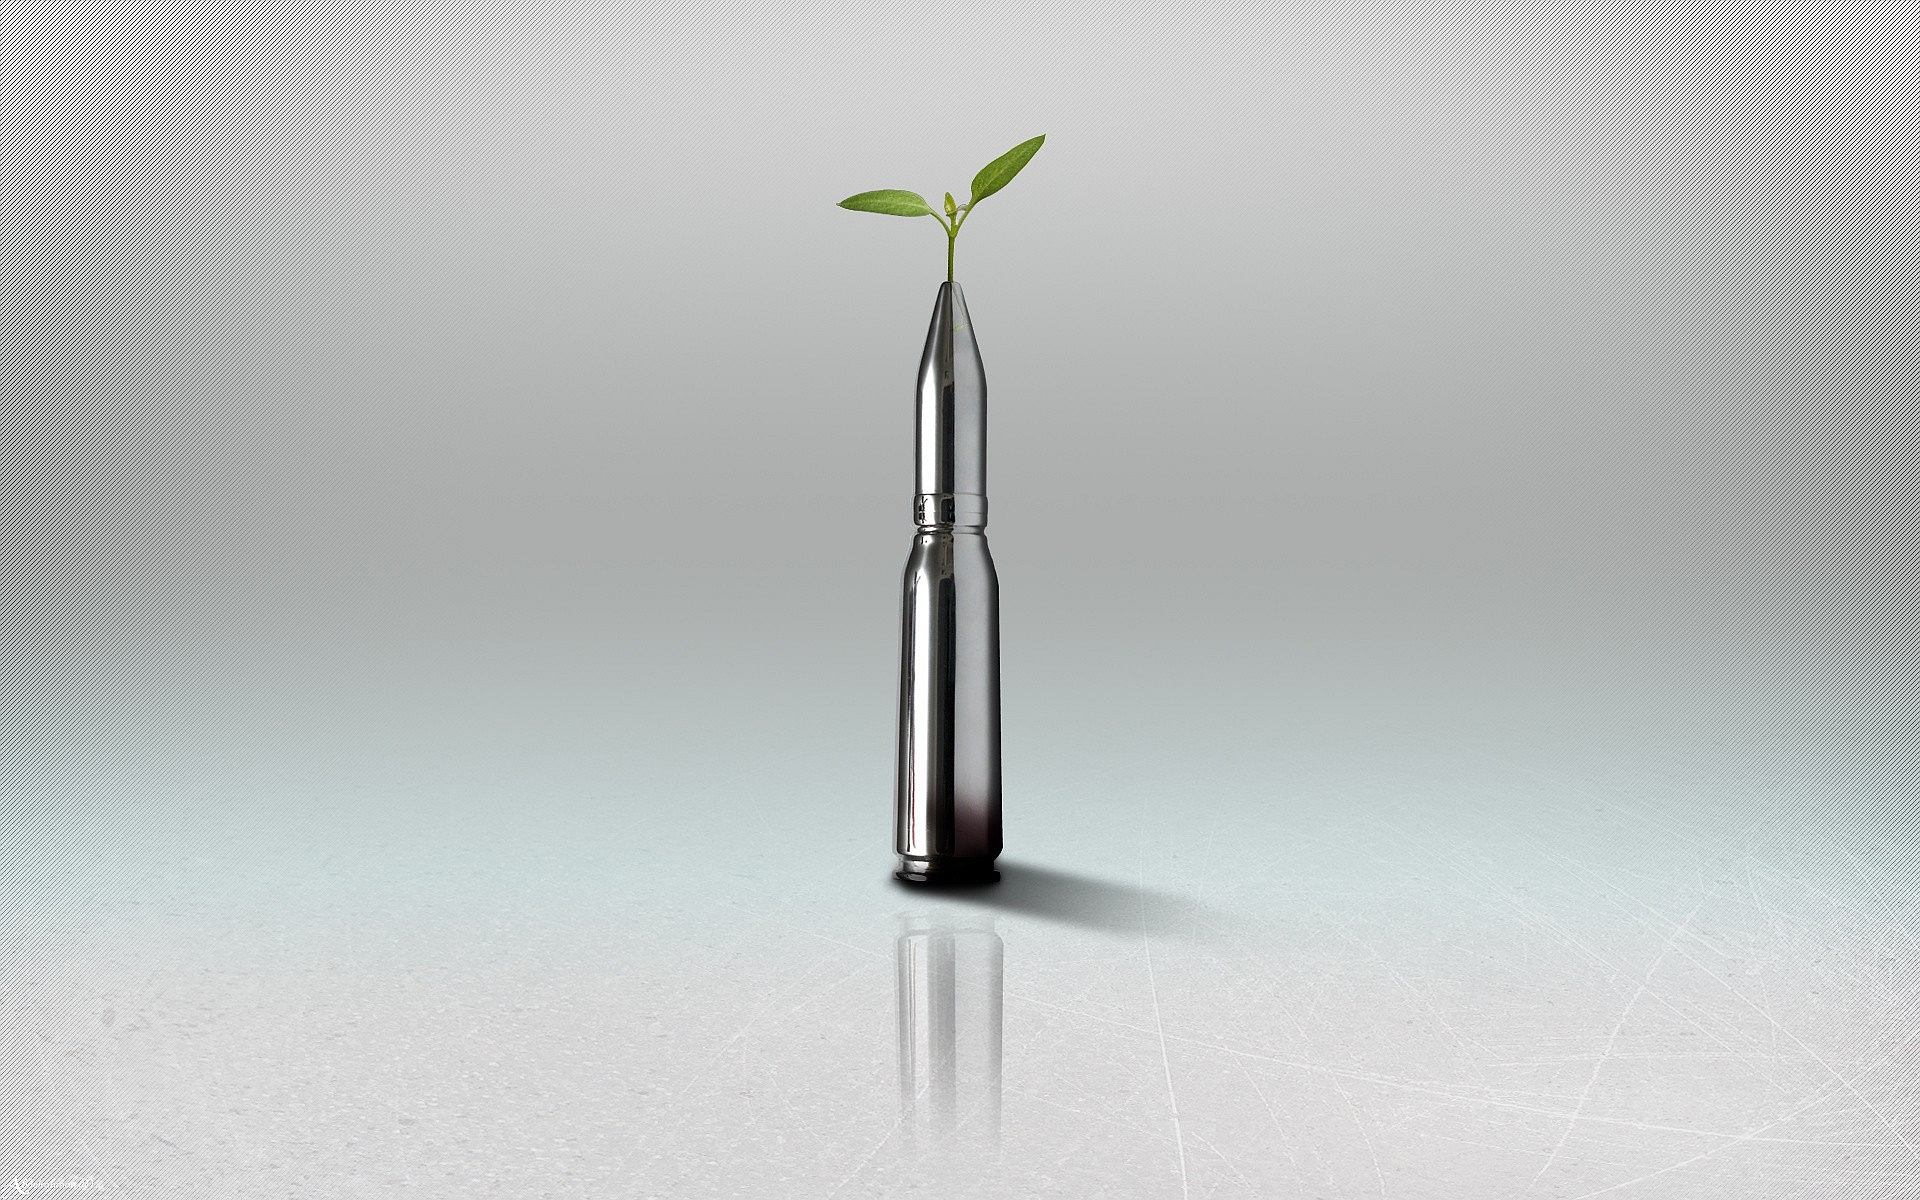 Plant on Bullet